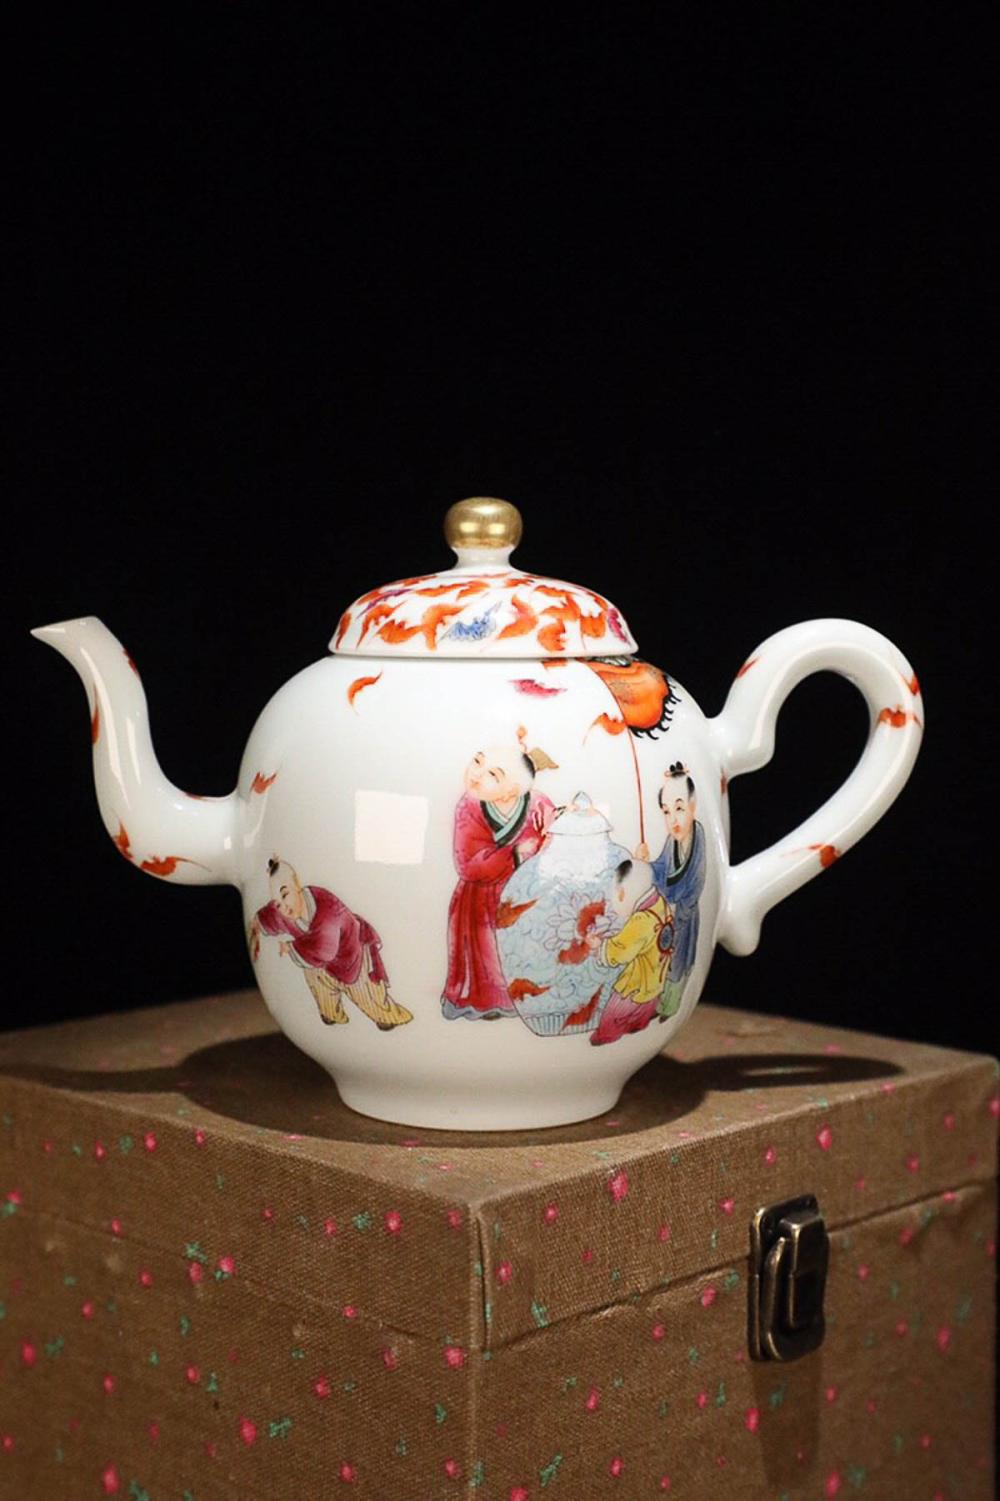 17-19TH CENTURY, A STORY DESIGN PORCELAIN TEAPOT, QING DYNASTY